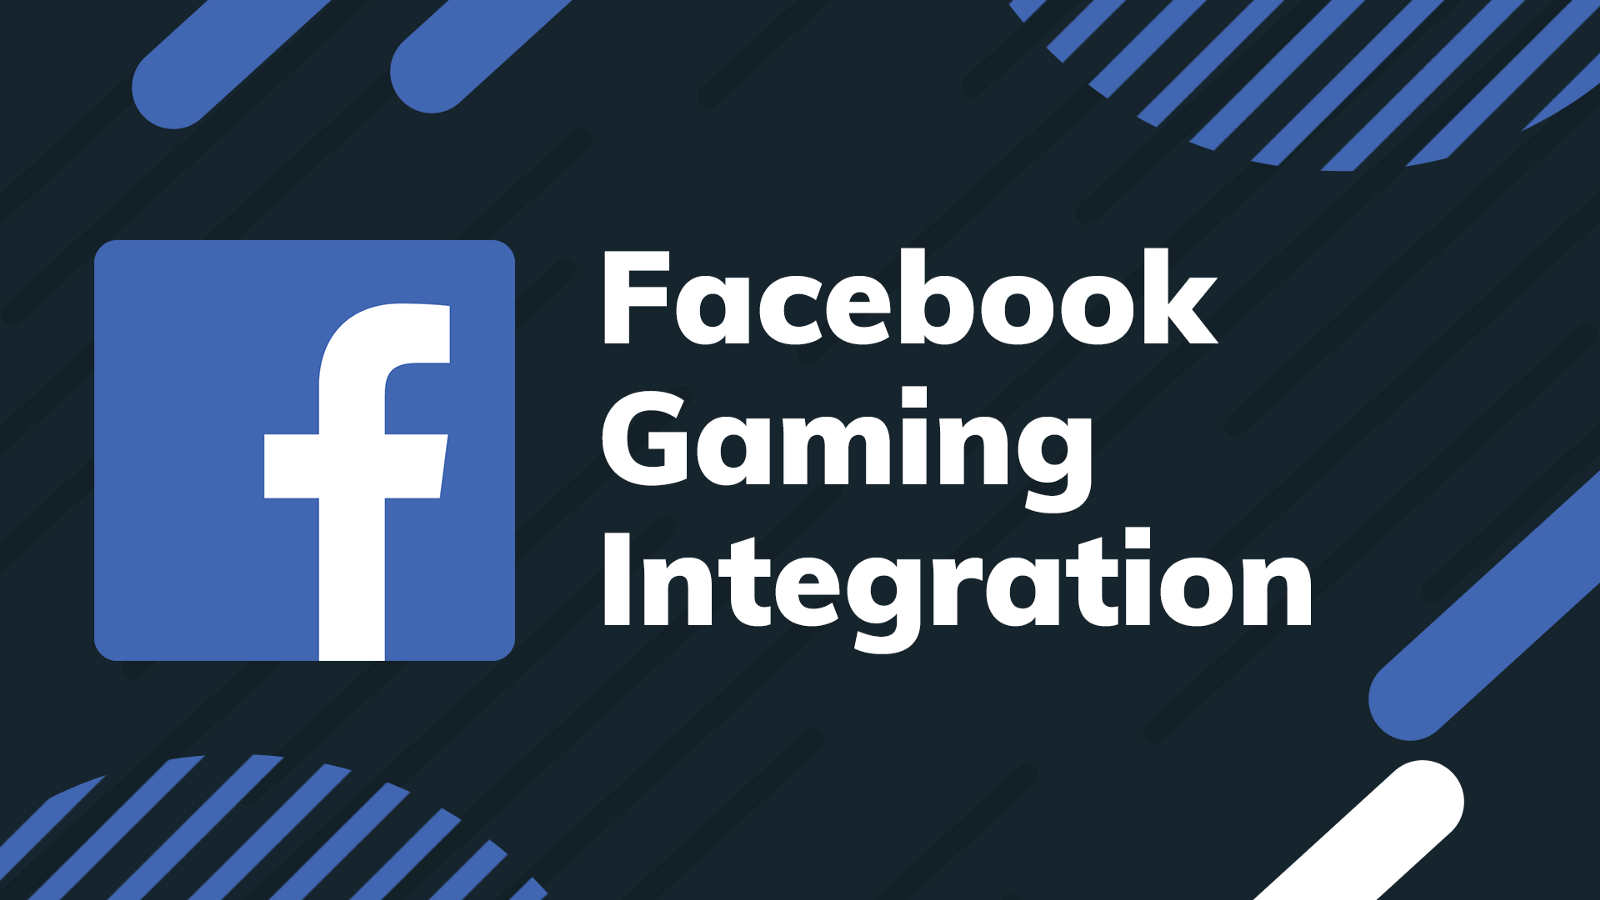 e7a5c7335 Streaming Games on Facebook Just Got Easier – Streamlabs Blog